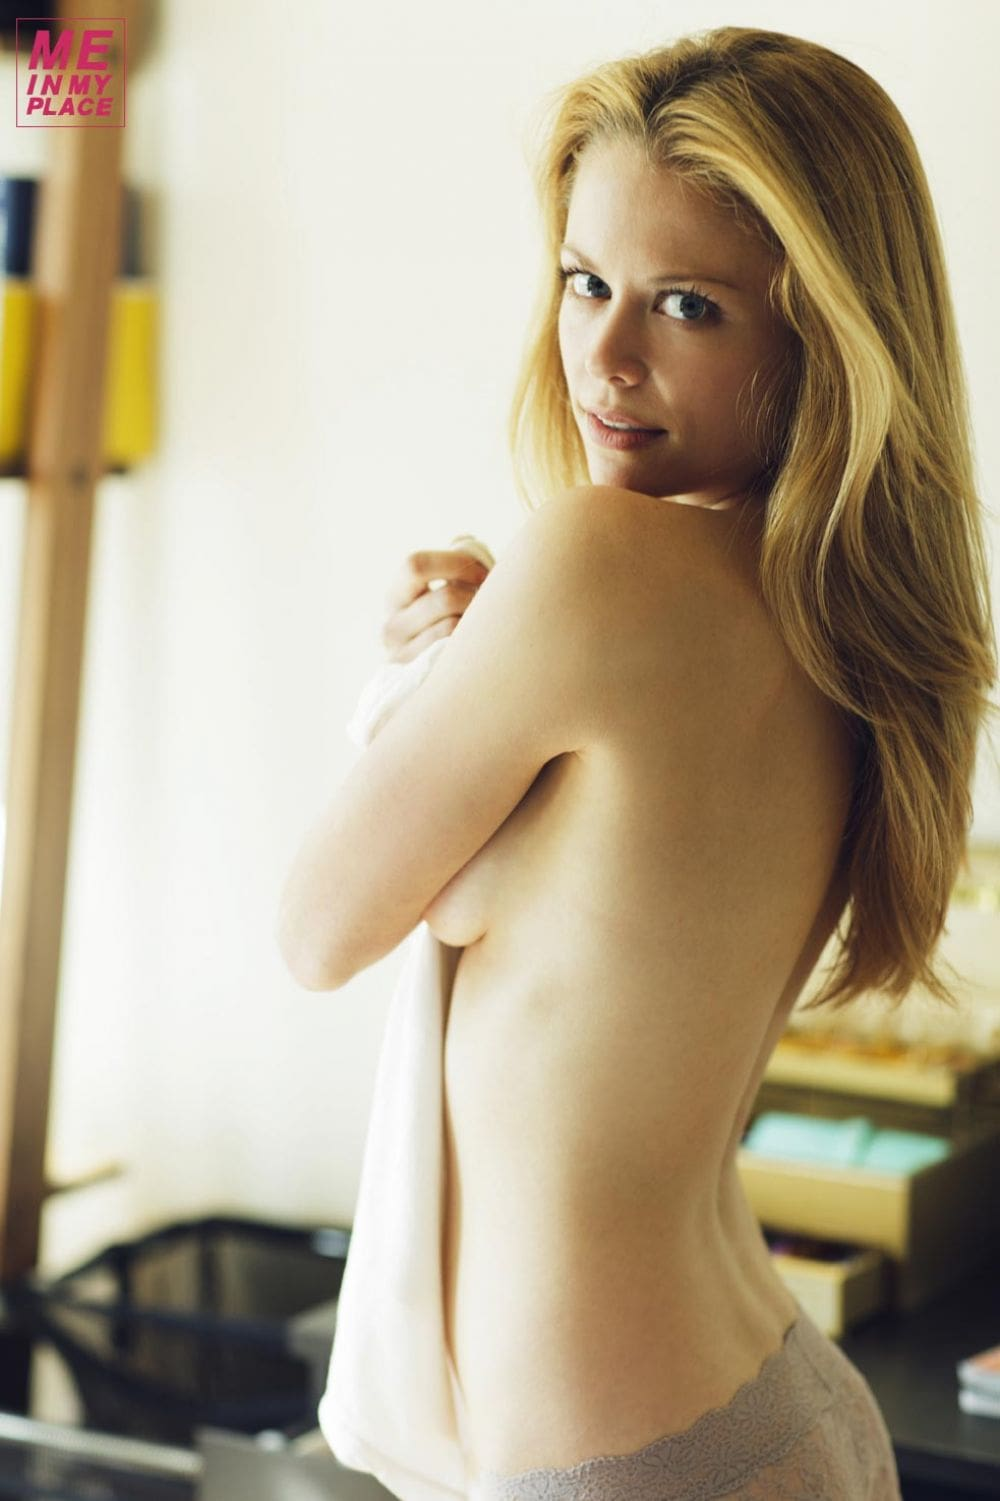 The Hottest Photos Of Claire Coffee 12thblog